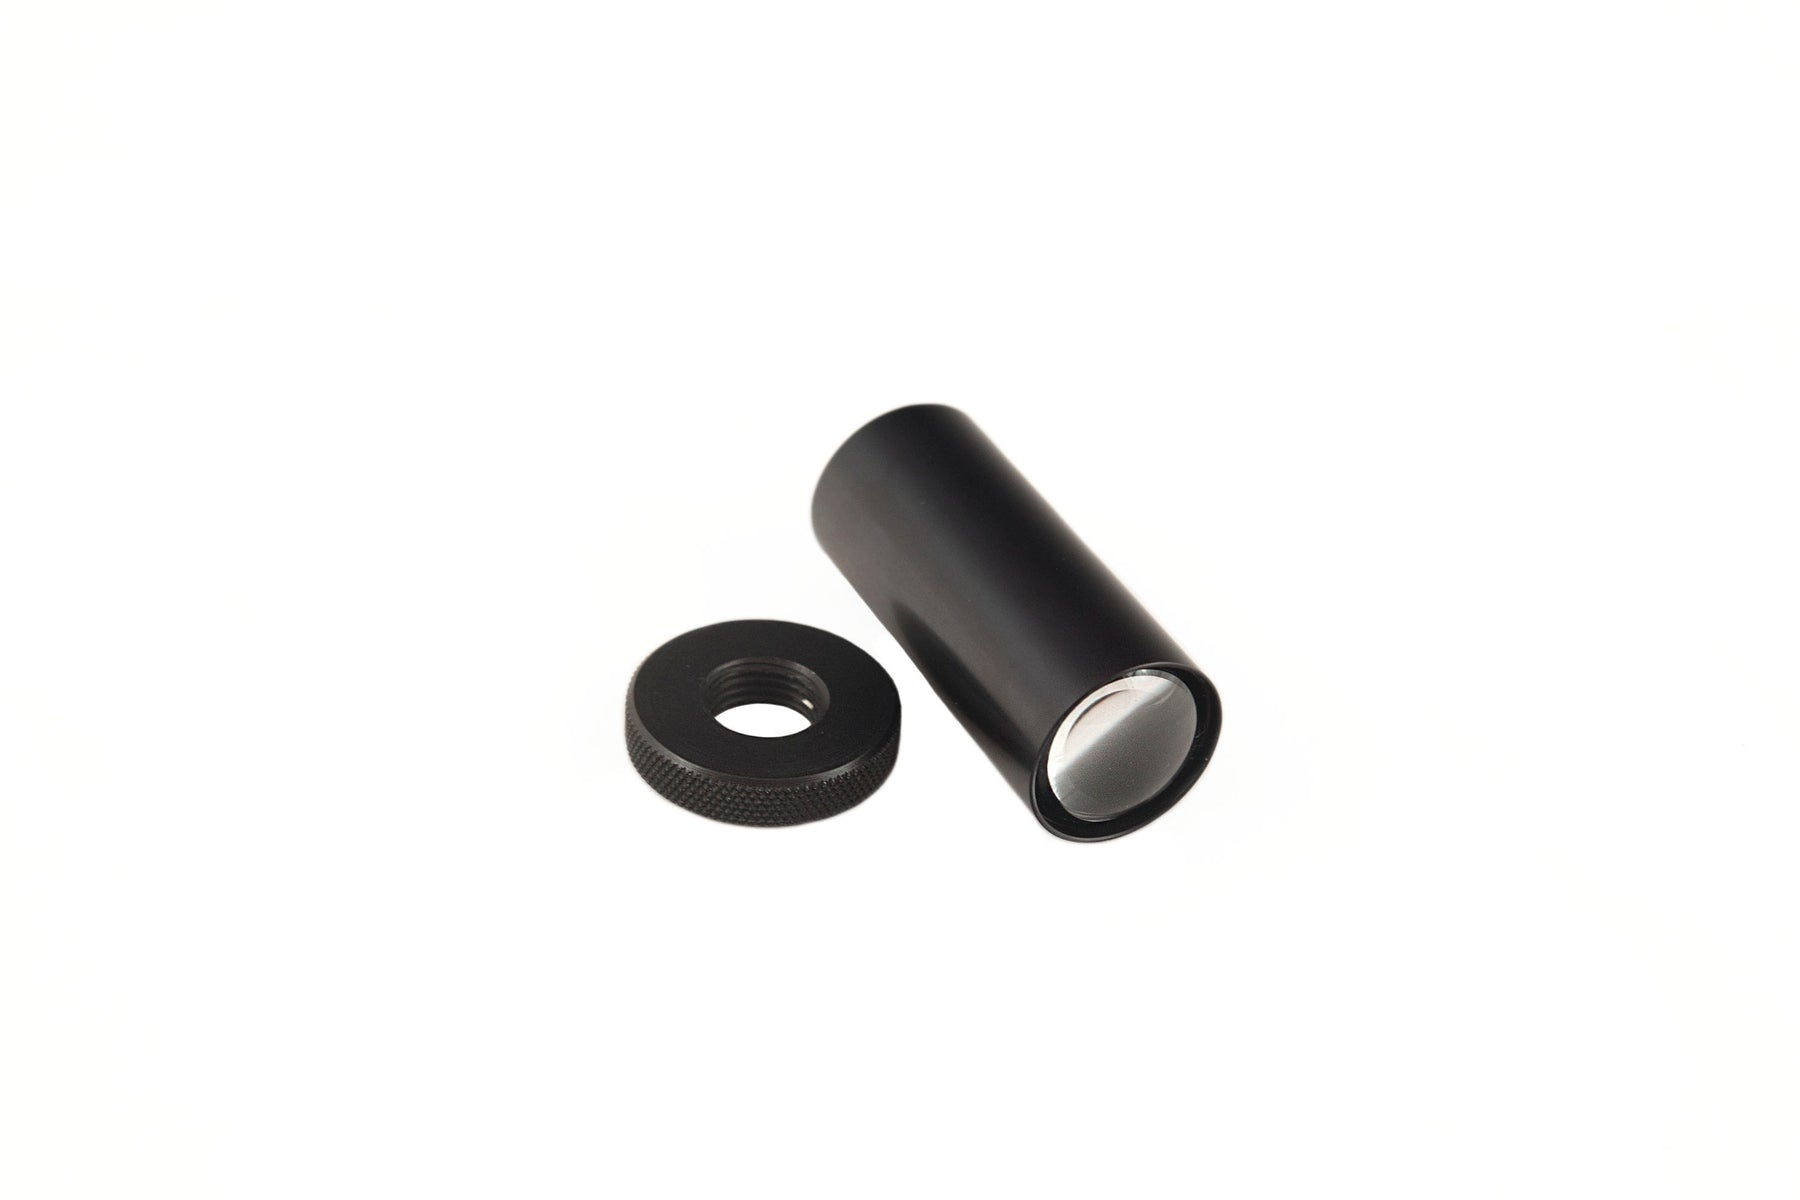 LH-755 Lens Assembly 28mm Focal Length for EEG37